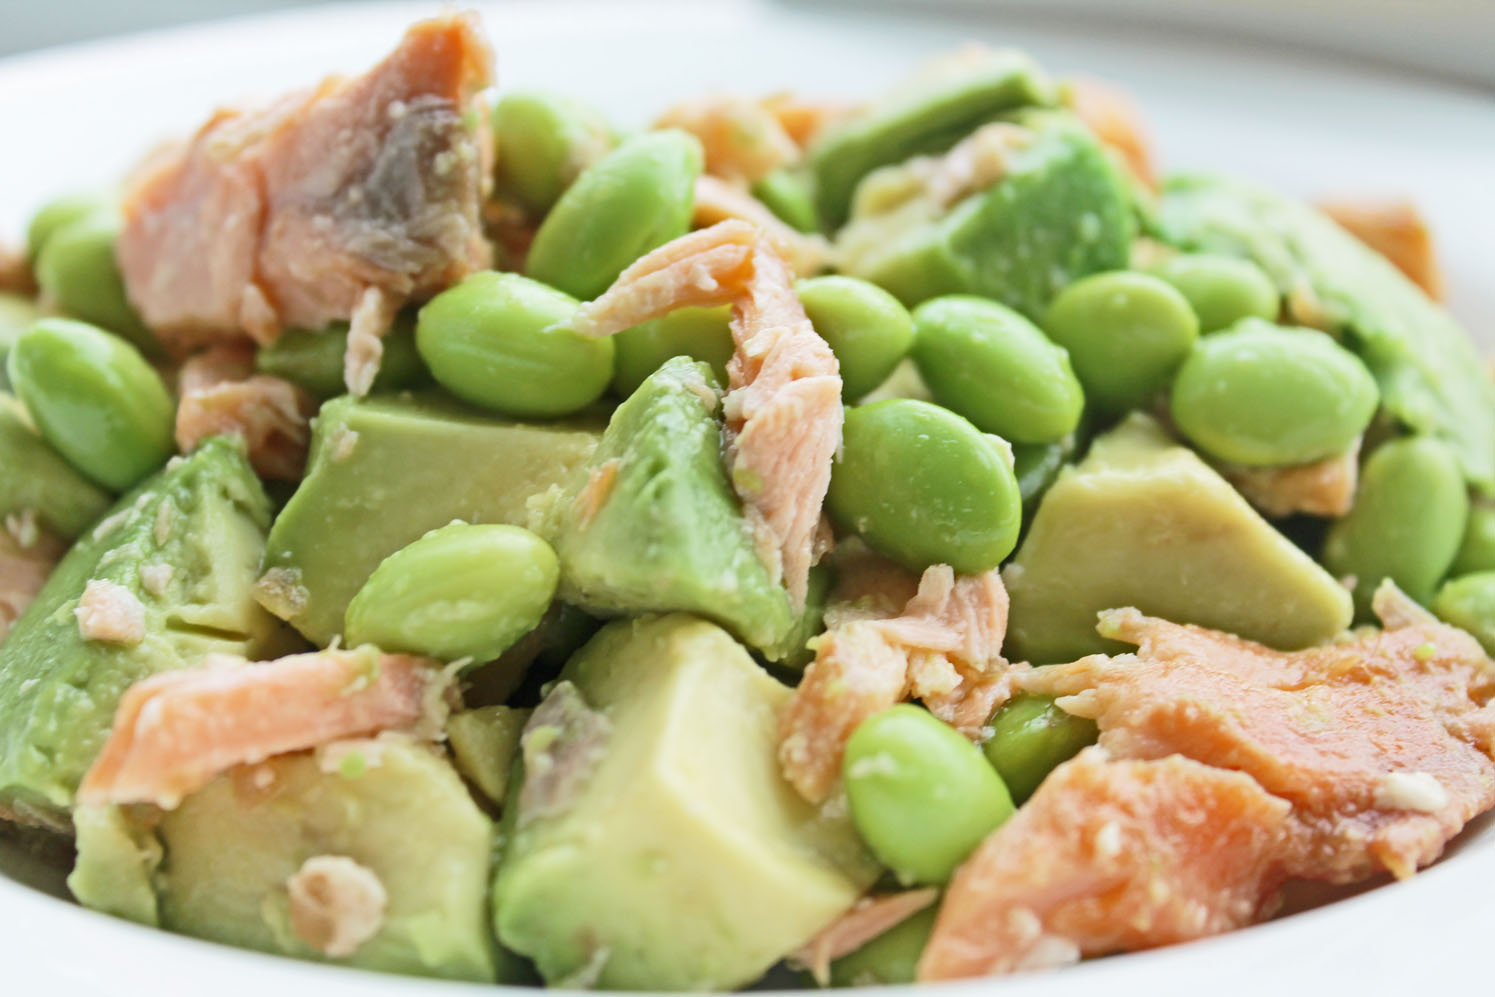 Healthy Dinner Option for Clean Eating Diet: Salmon Avocado Edamame Bowl